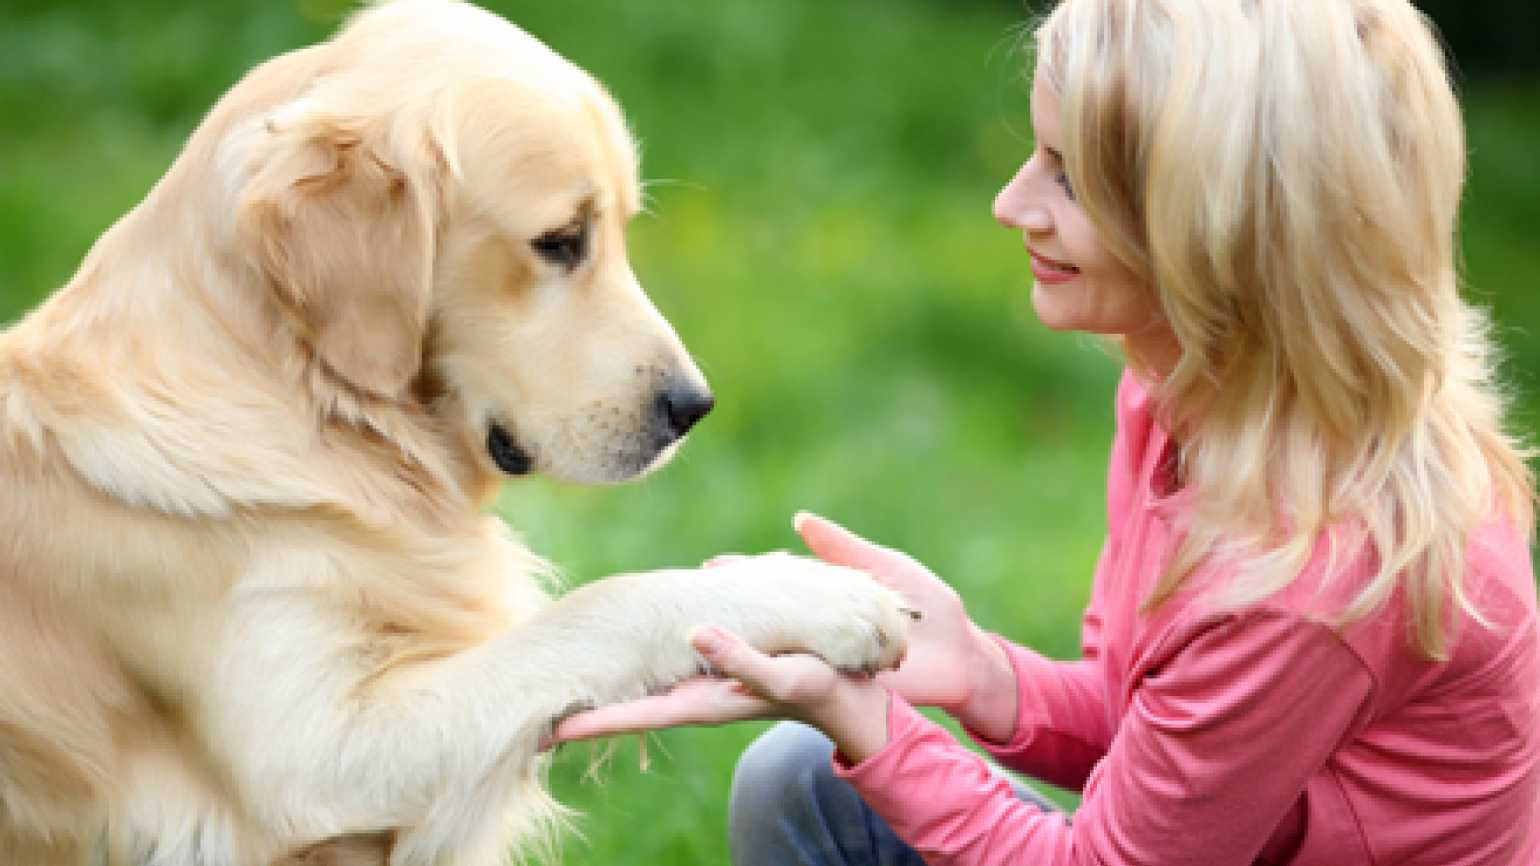 A photo of a golder retriever and a young woman